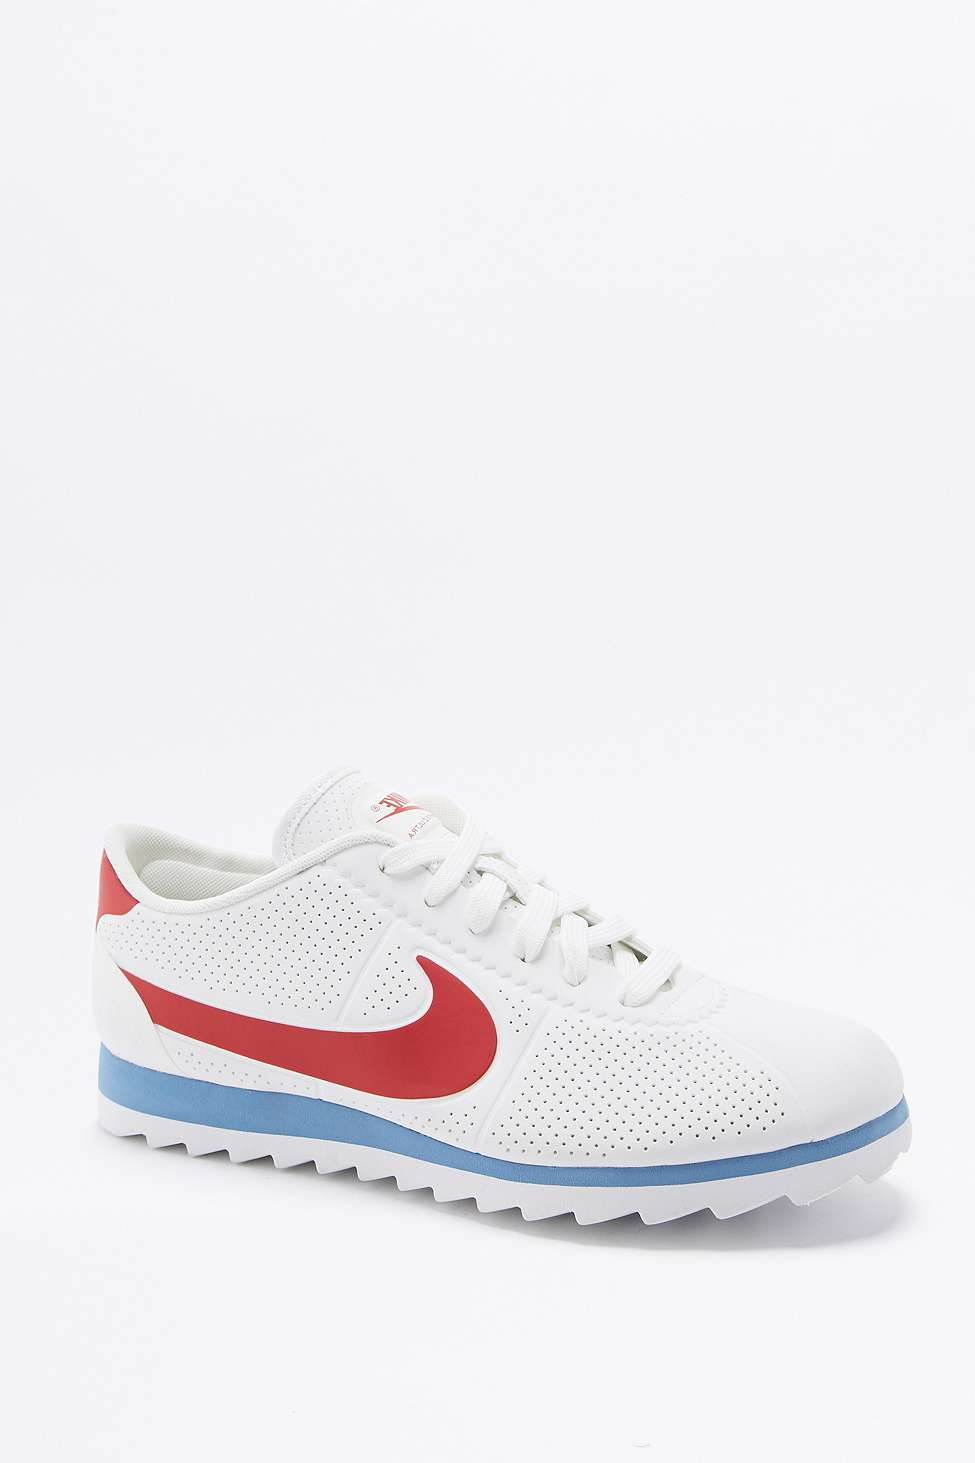 Nike Cortez Ultra Moire Red, White, and Blue Sneakers